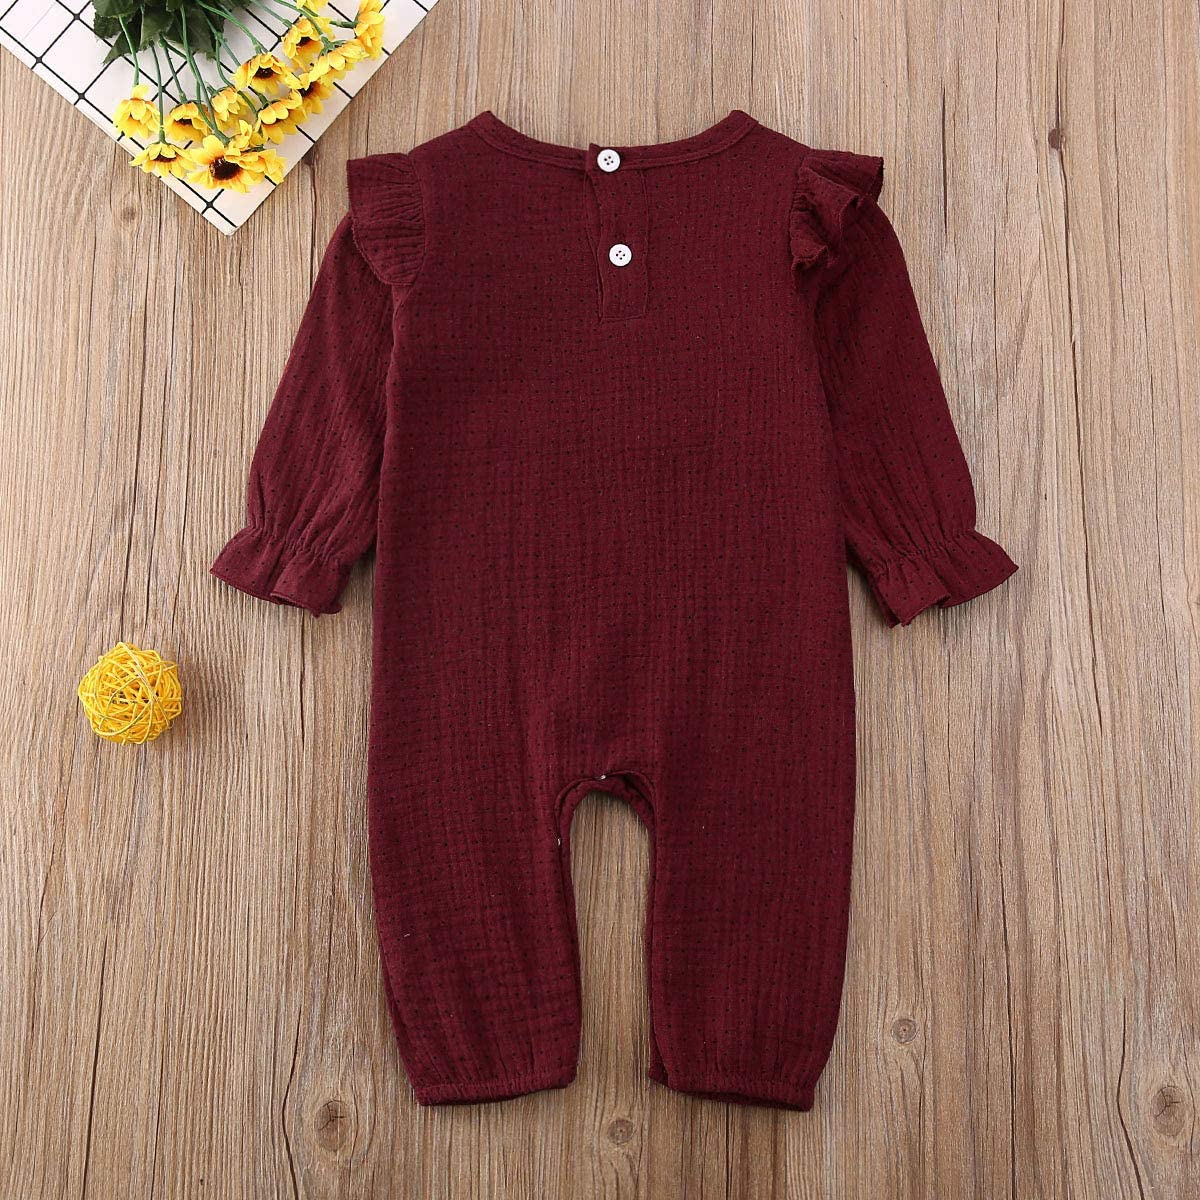 GWJGOGO Newborn Baby Girl Romper Bodysuit Long Sleeve Cotton Linen Jumpsuit One Piece Ruffle Clothes with Dot